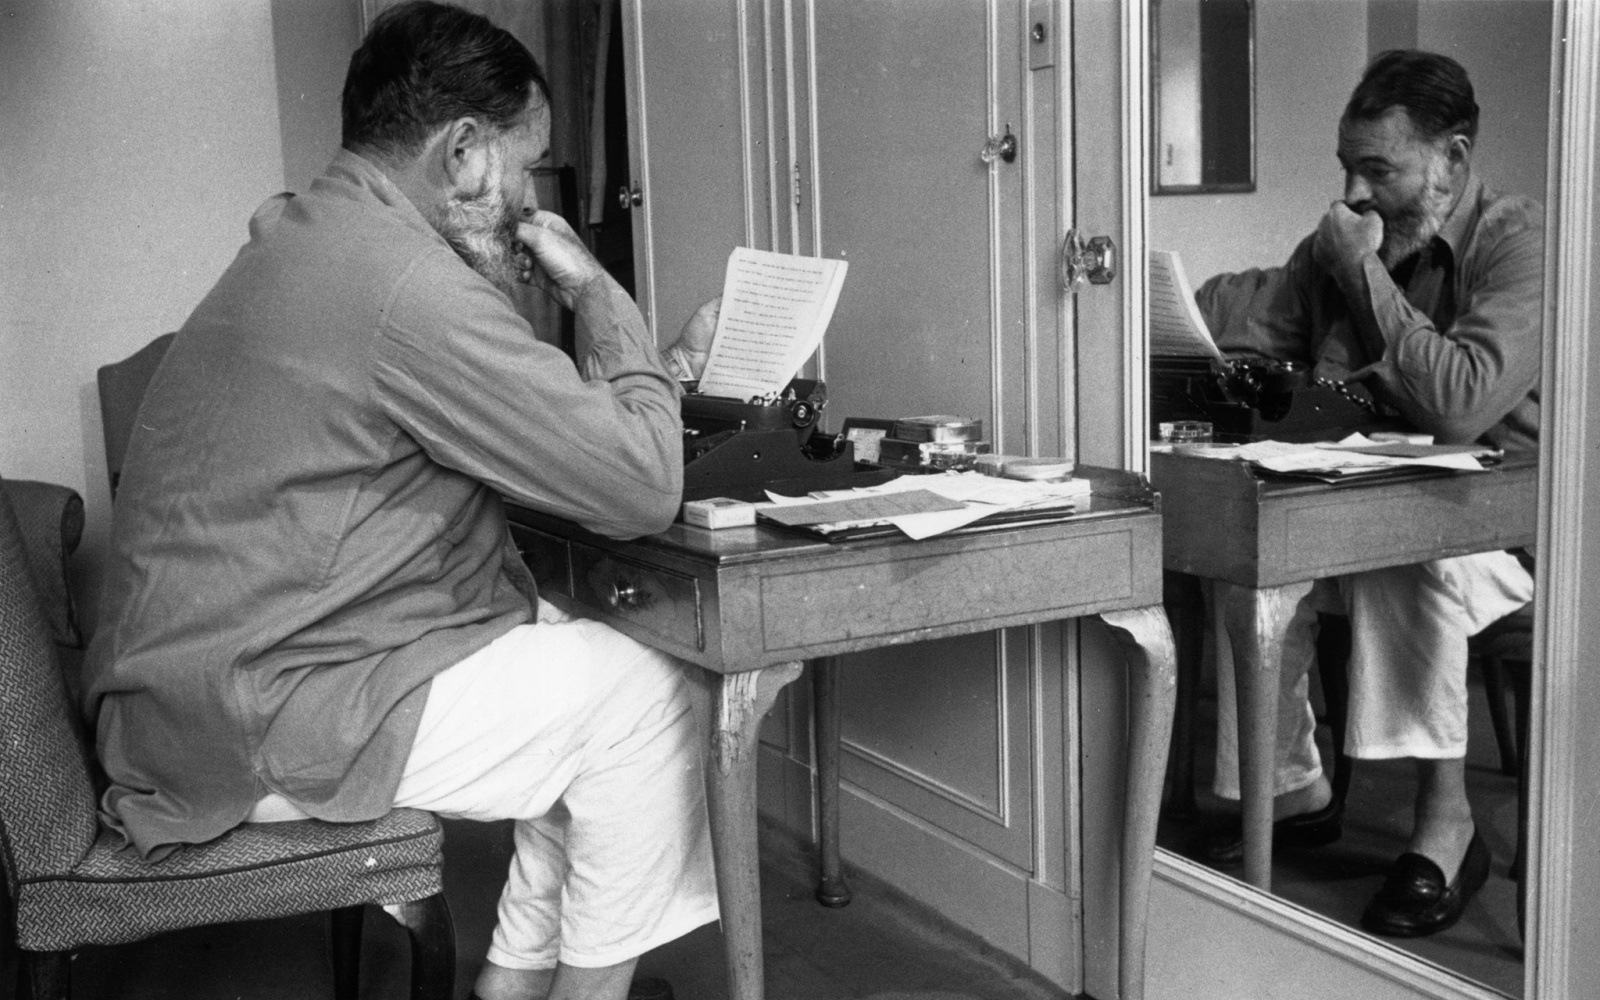 Eased Cuba Relations are Saving Ernest Hemingway's Library